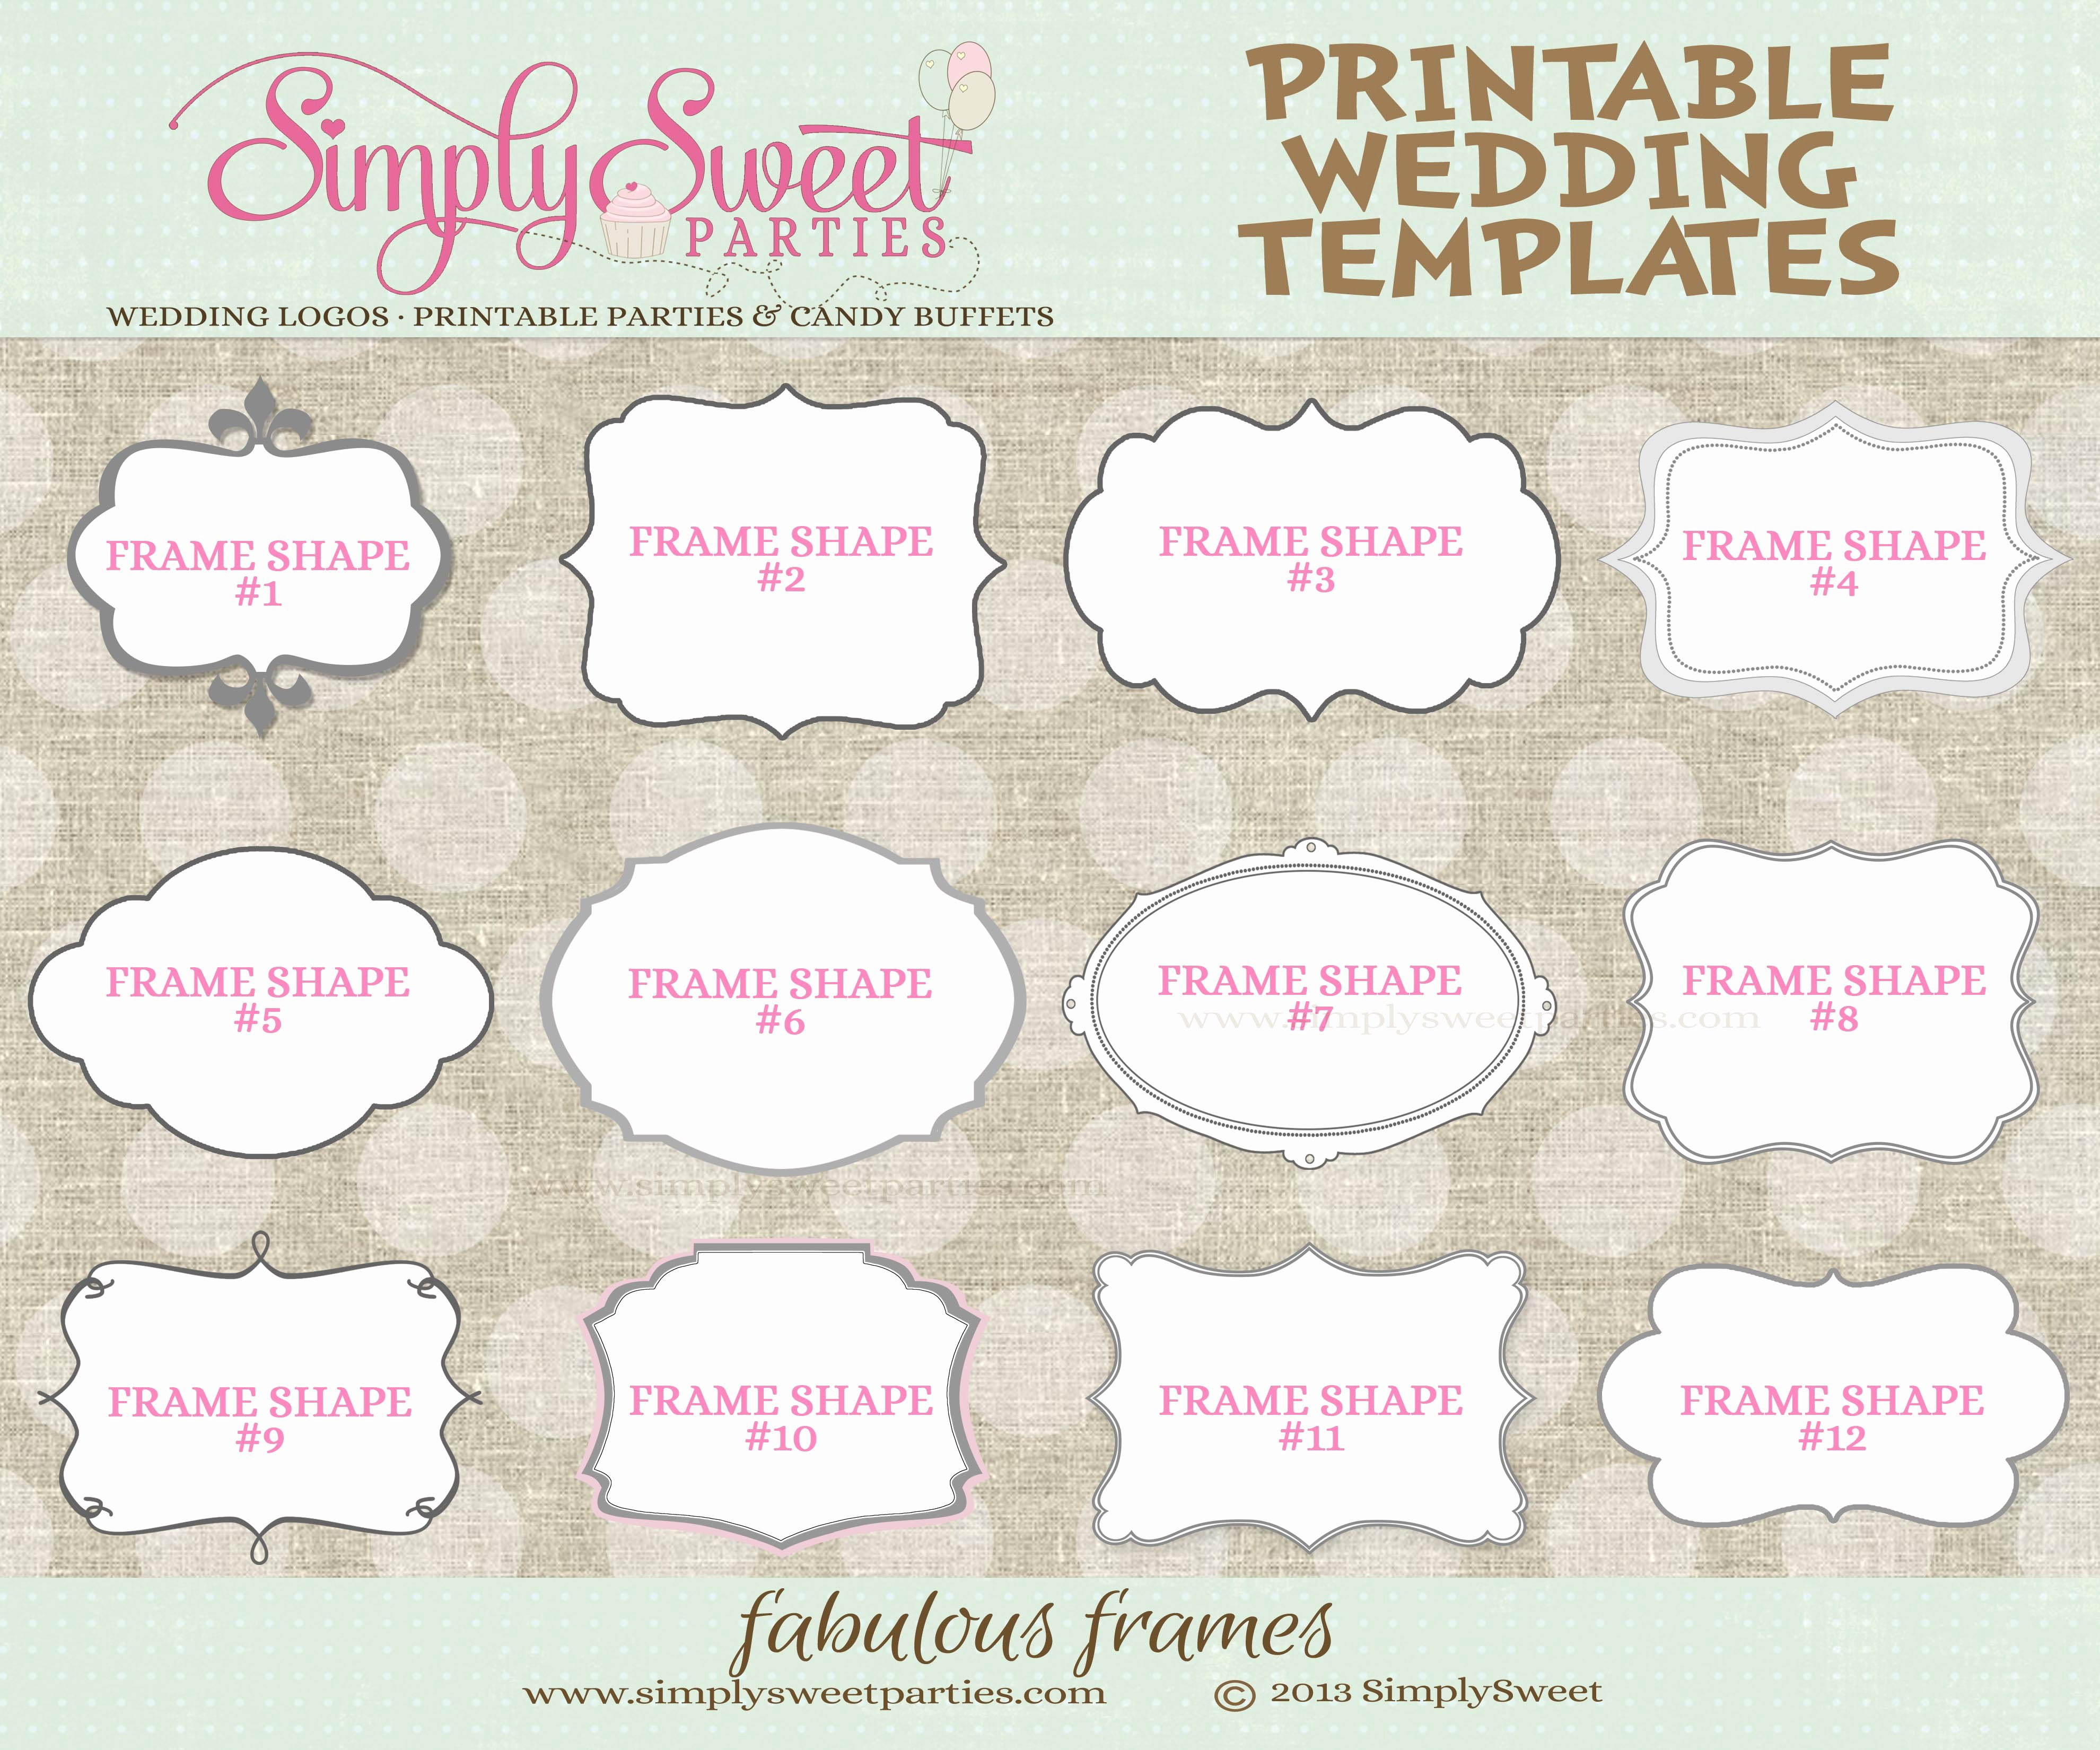 9 Best Of Printable Wedding Templates Favor Free